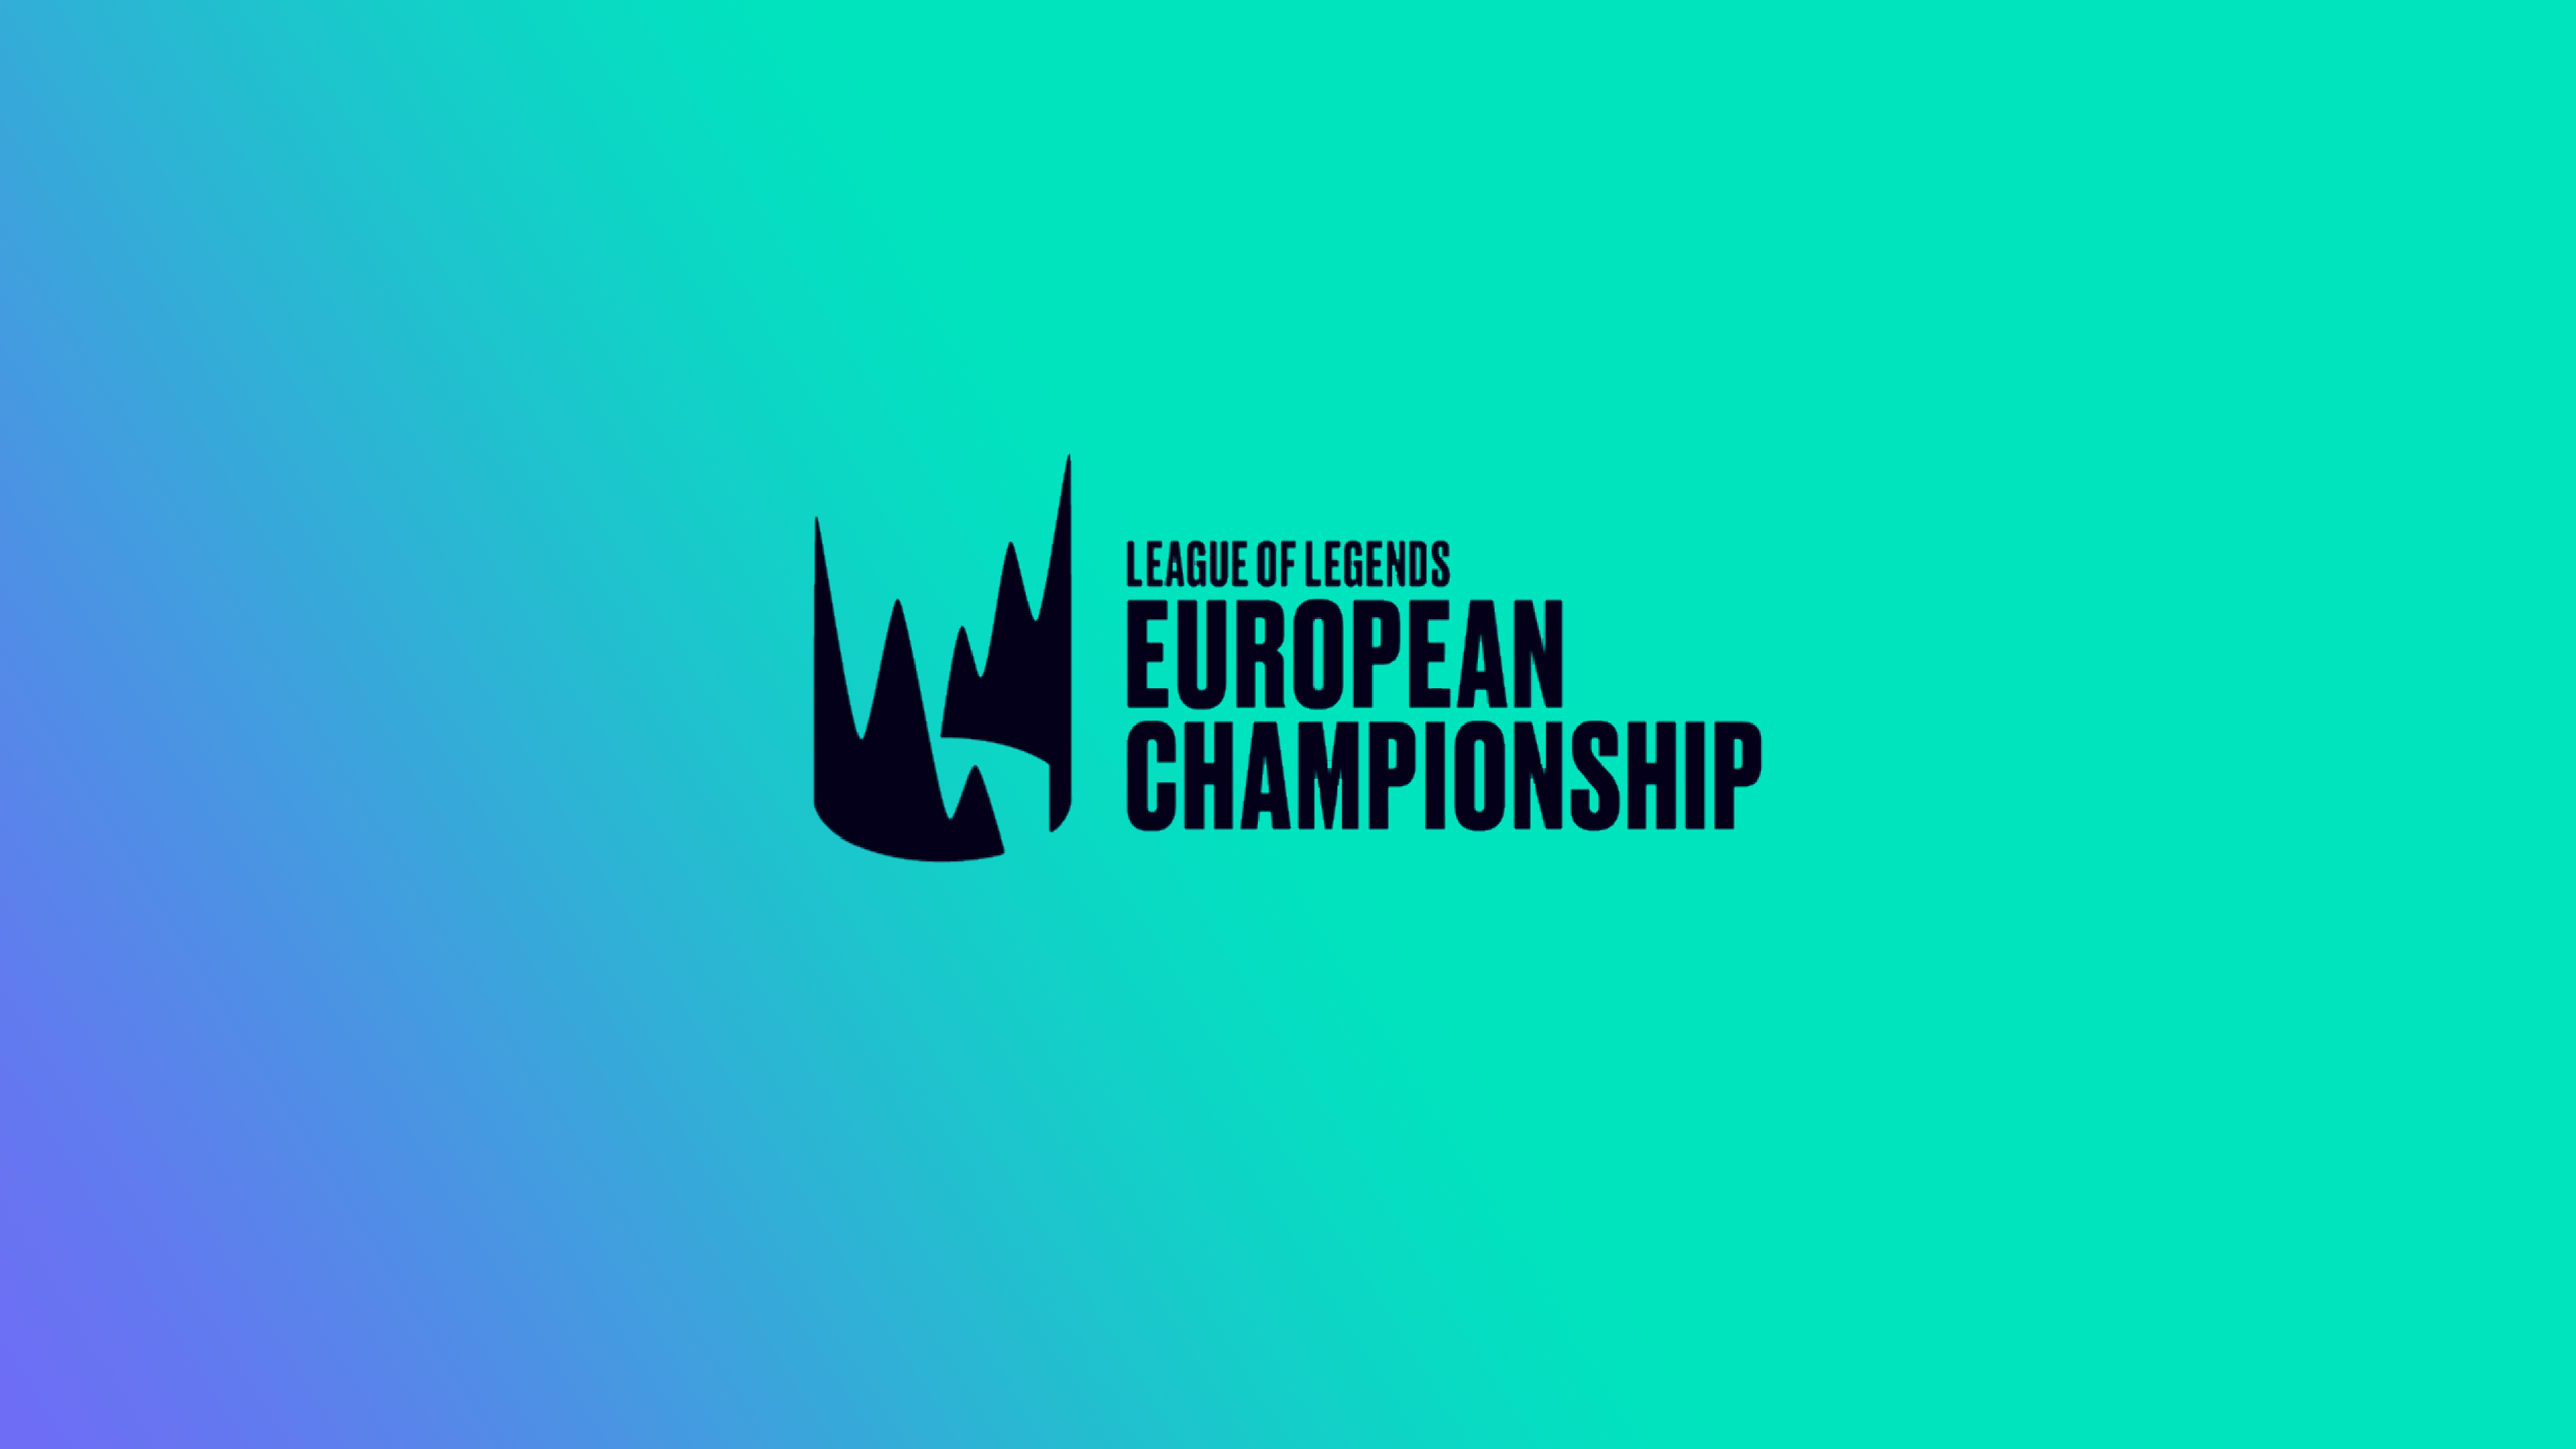 LEC – Fnatic's Win Against G2 Esports In LEC Summer Split Semifinals Was Their First Win After More Than 2 Years